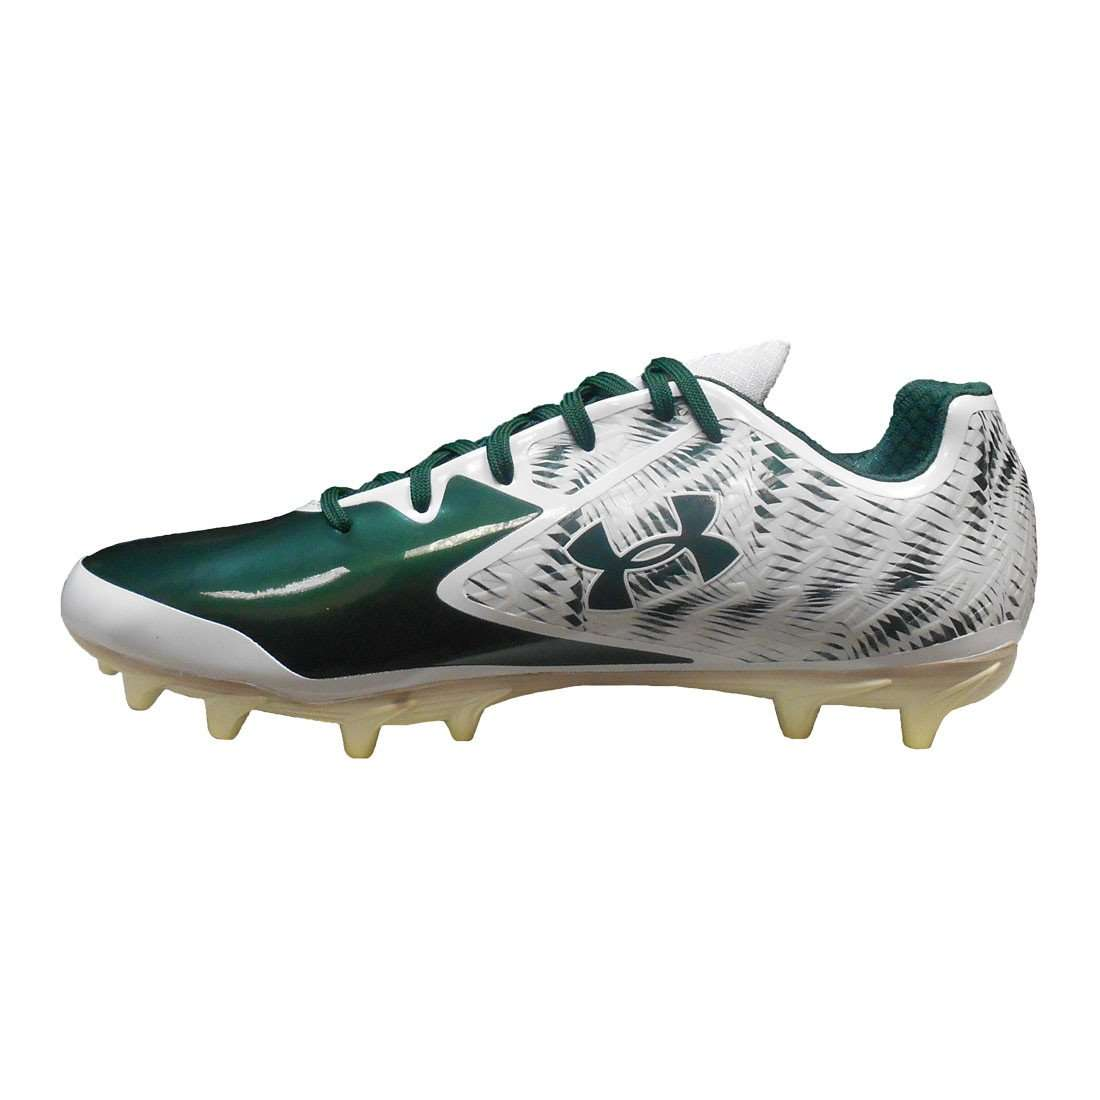 1f4132bd82e ... Under Armour Team Nitro Low MC Wide Football Cleats - League Outfitters  ...